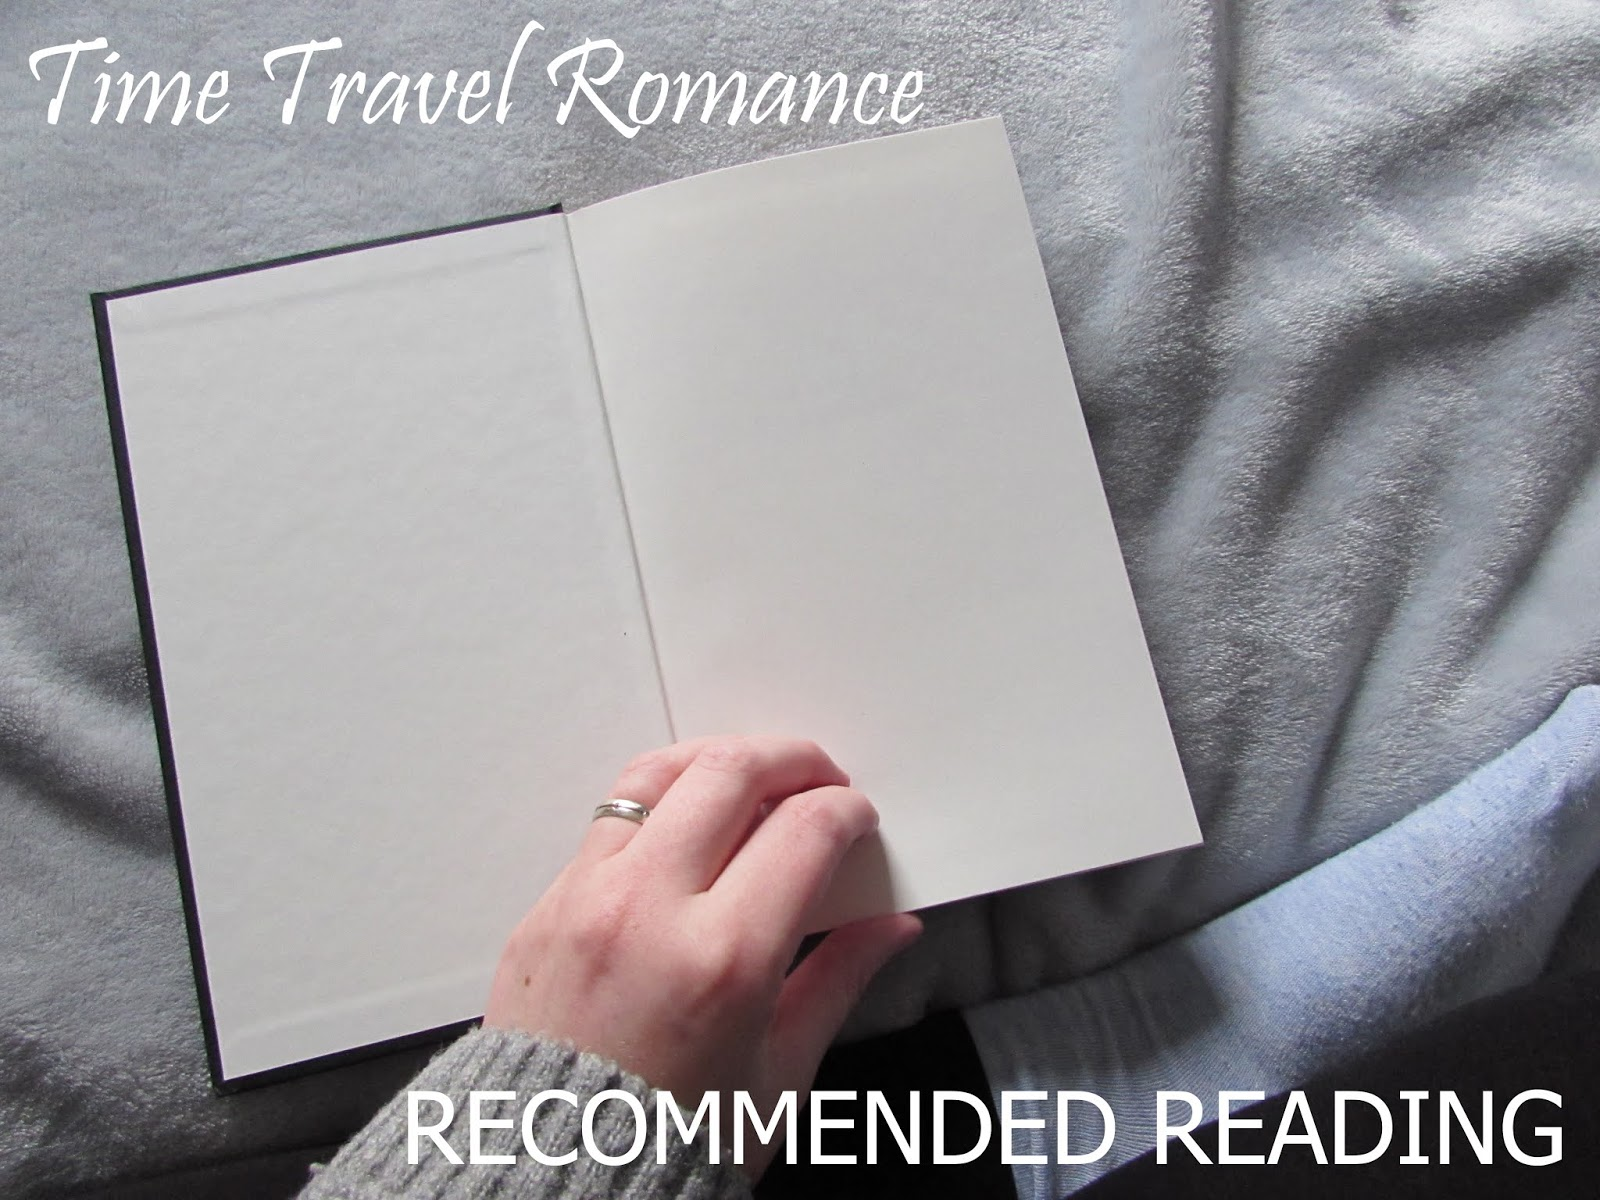 Recommended Reading | Time Travel Romance Books